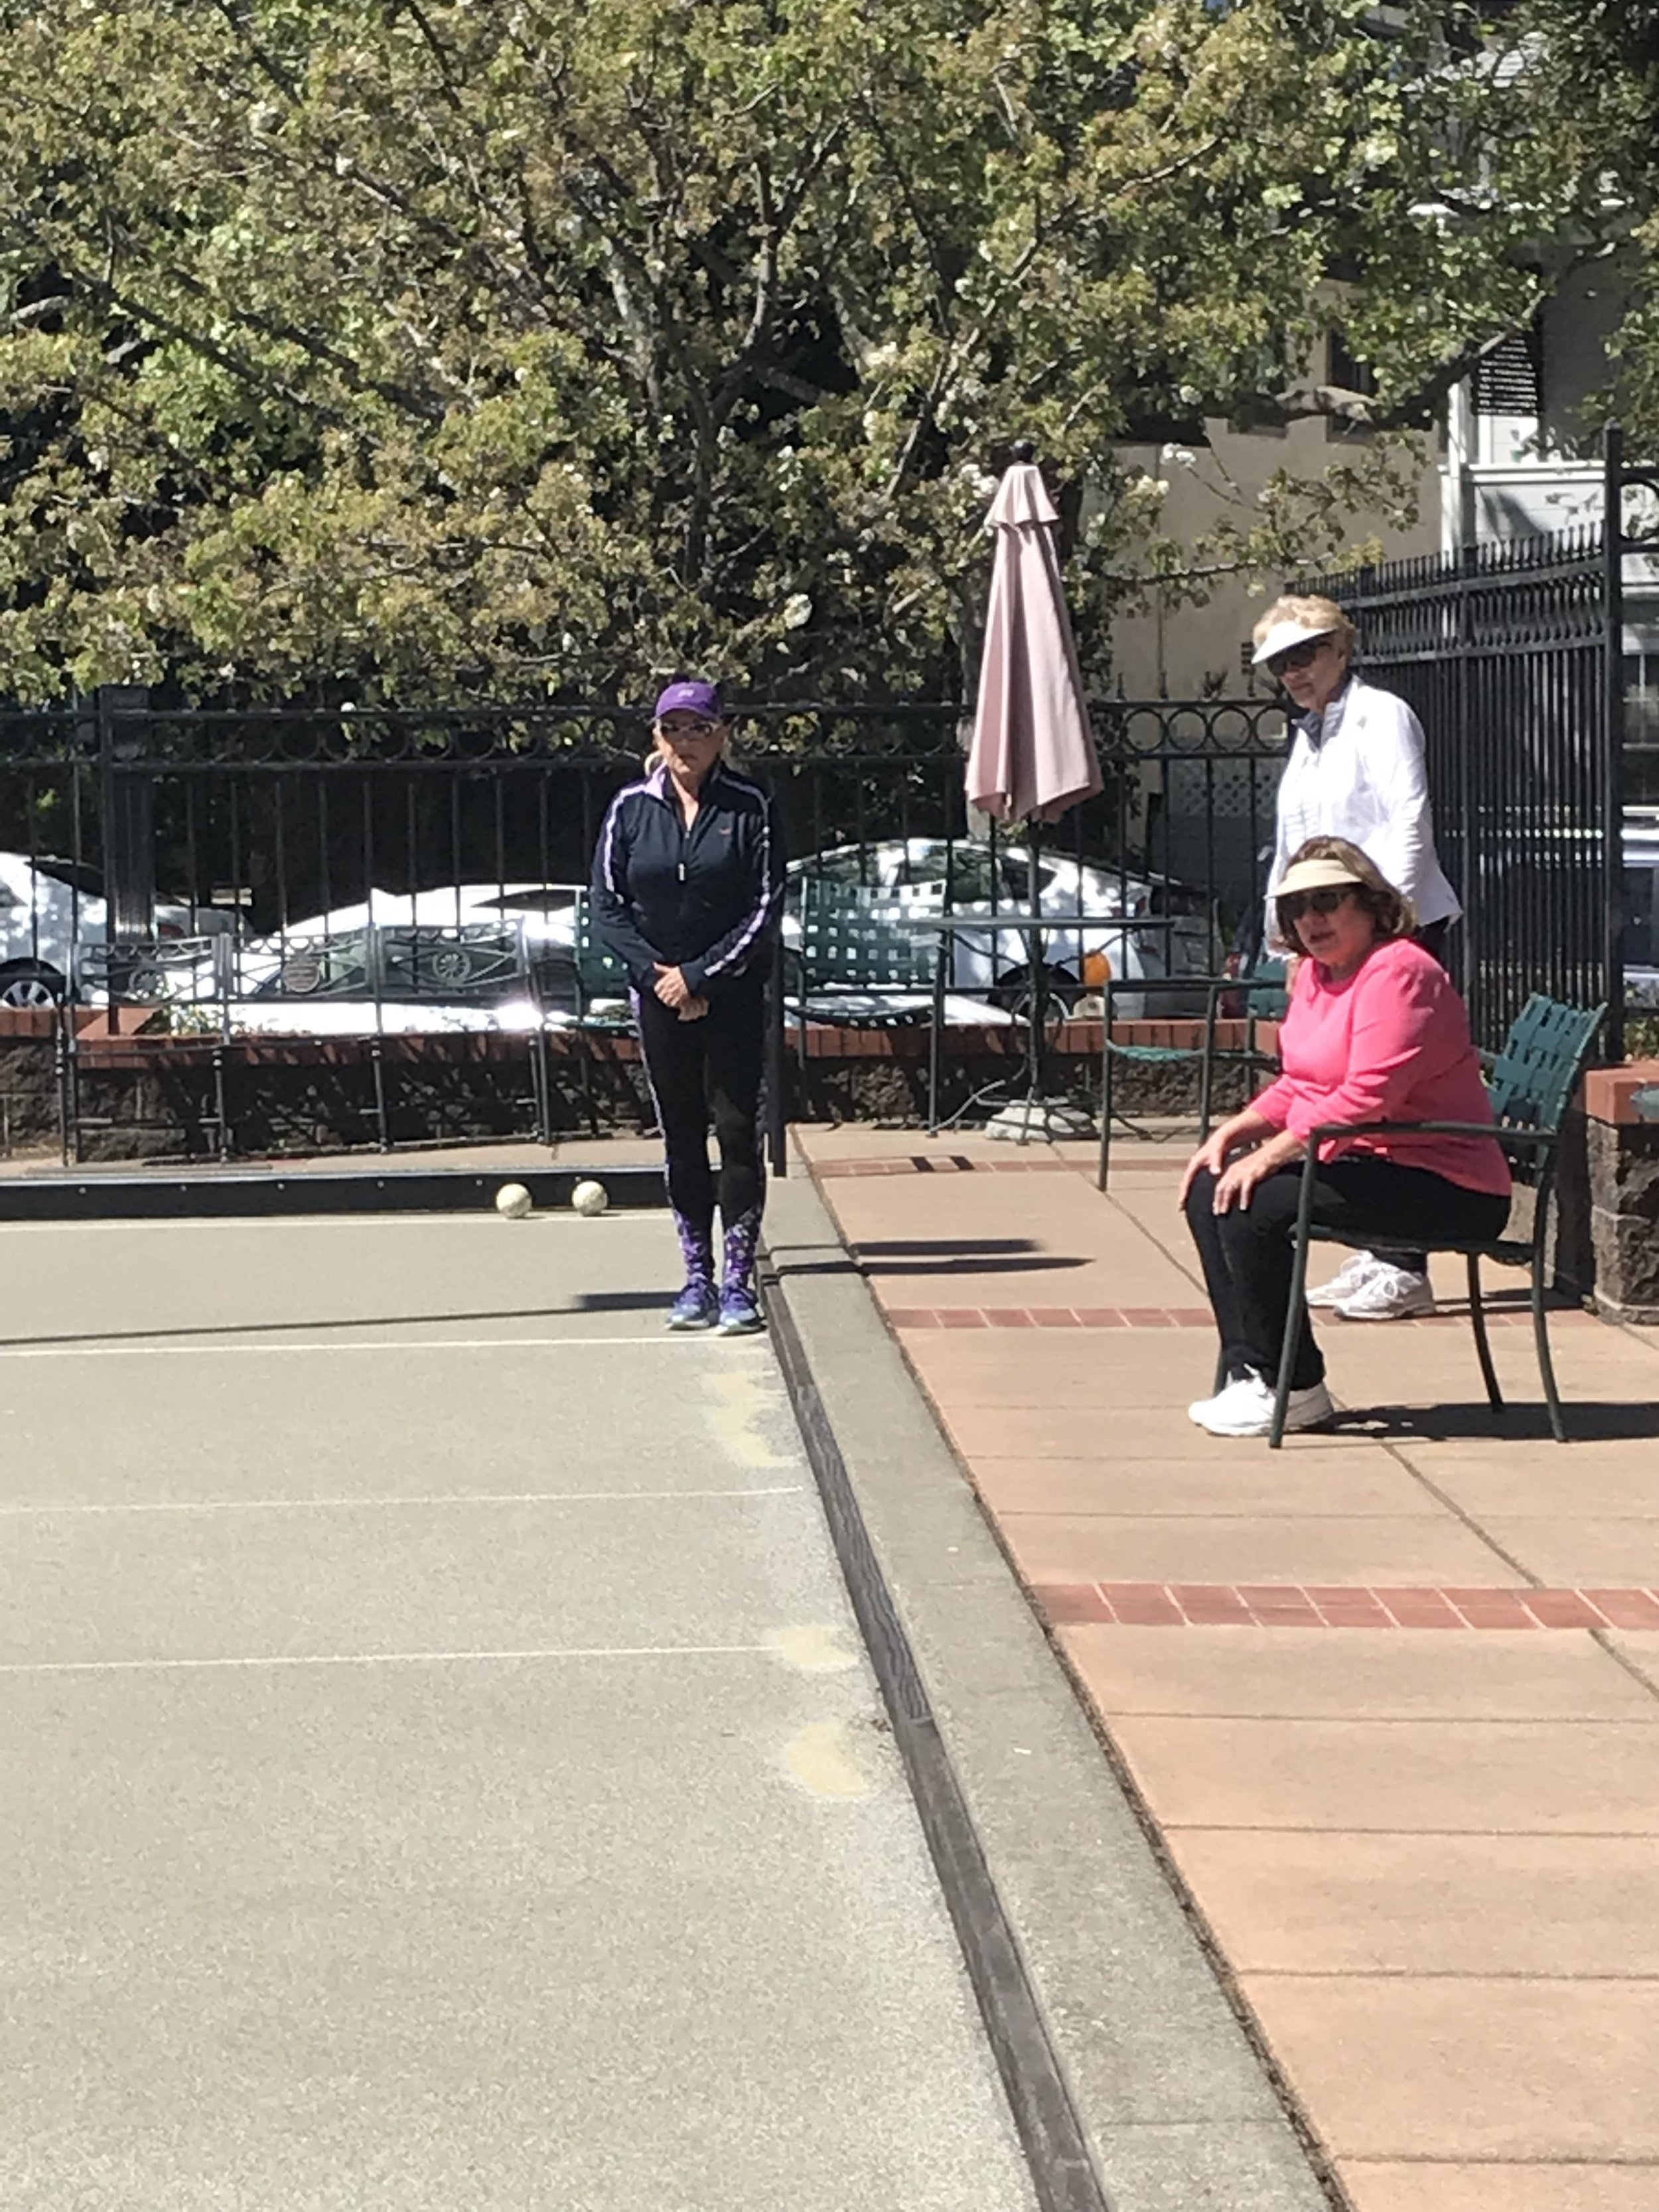 There is nothing better than playing bocce with your friends!